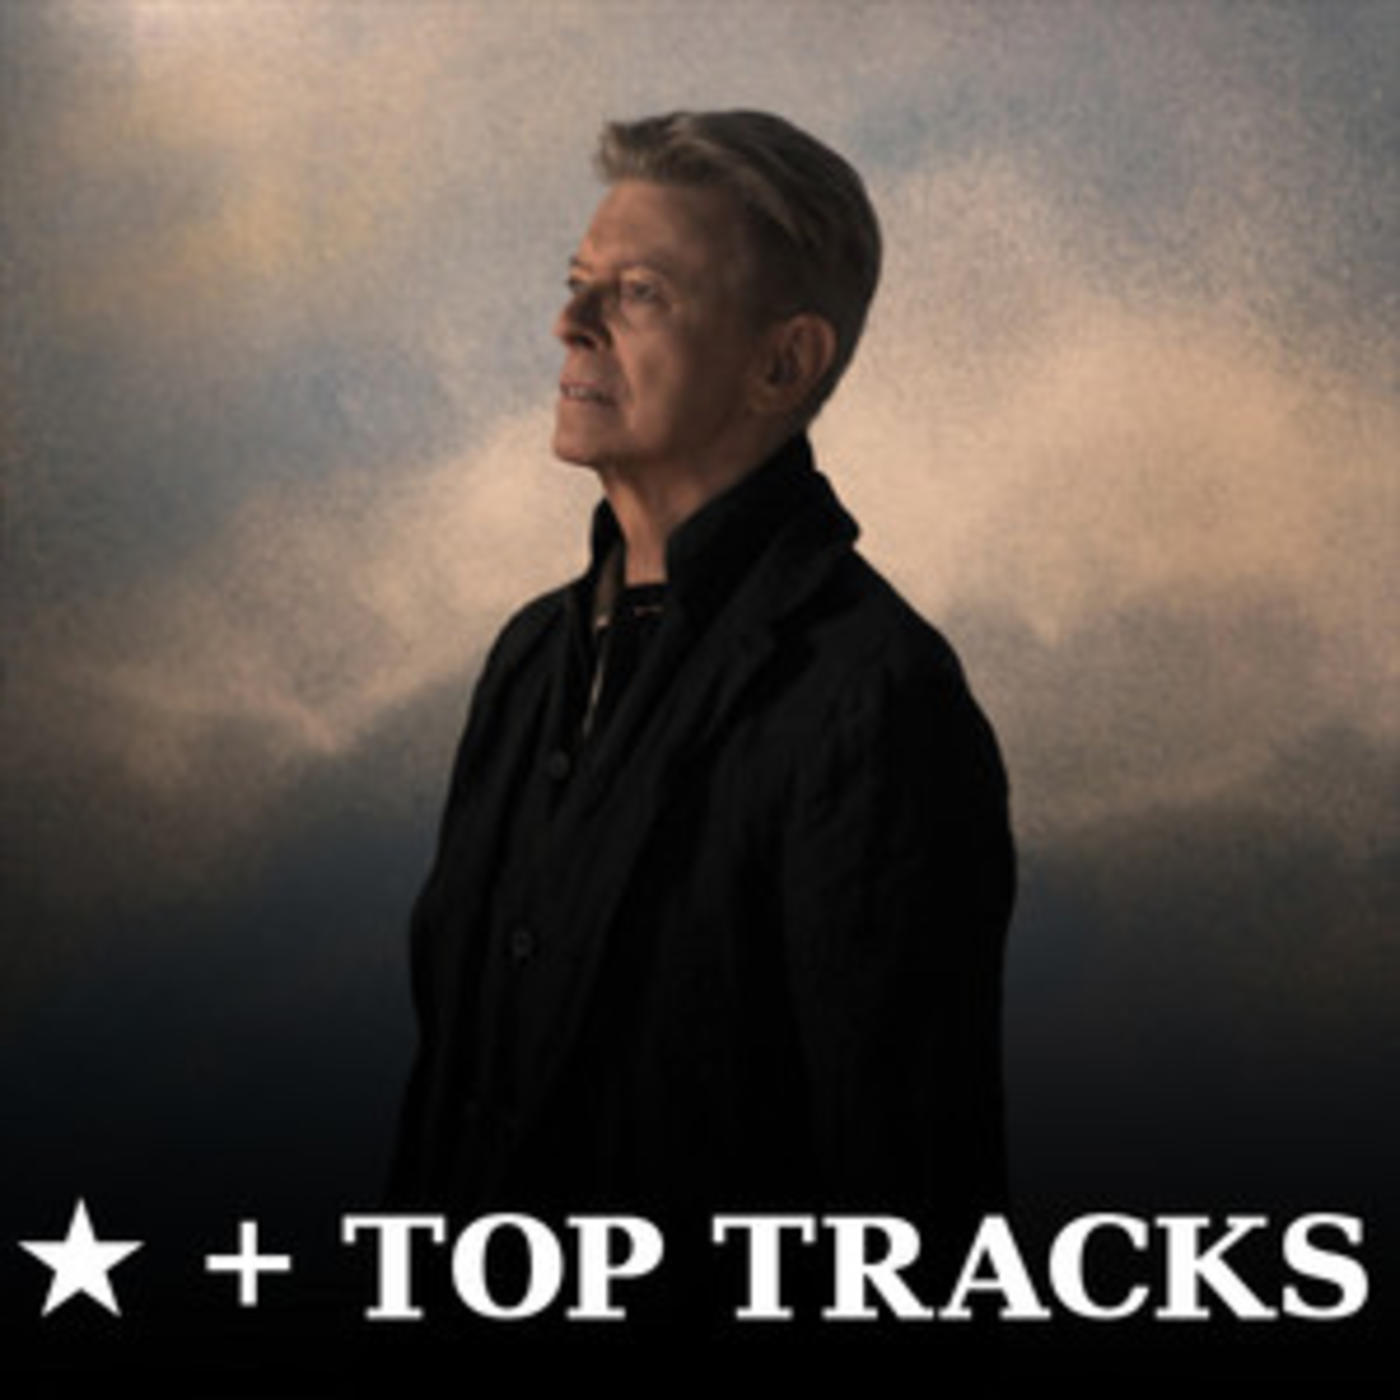 David Bowie Official Playlist: Top Tracks